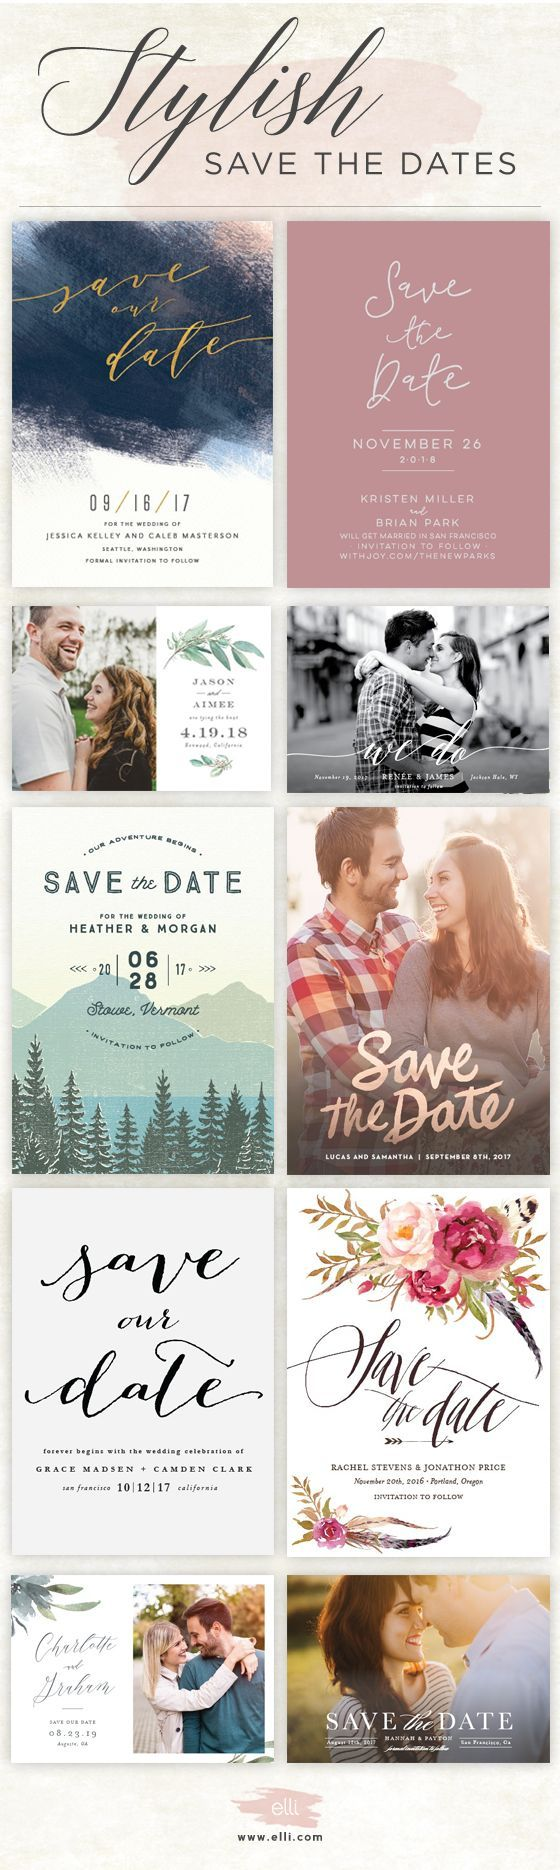 Find stylish save the dates and customize